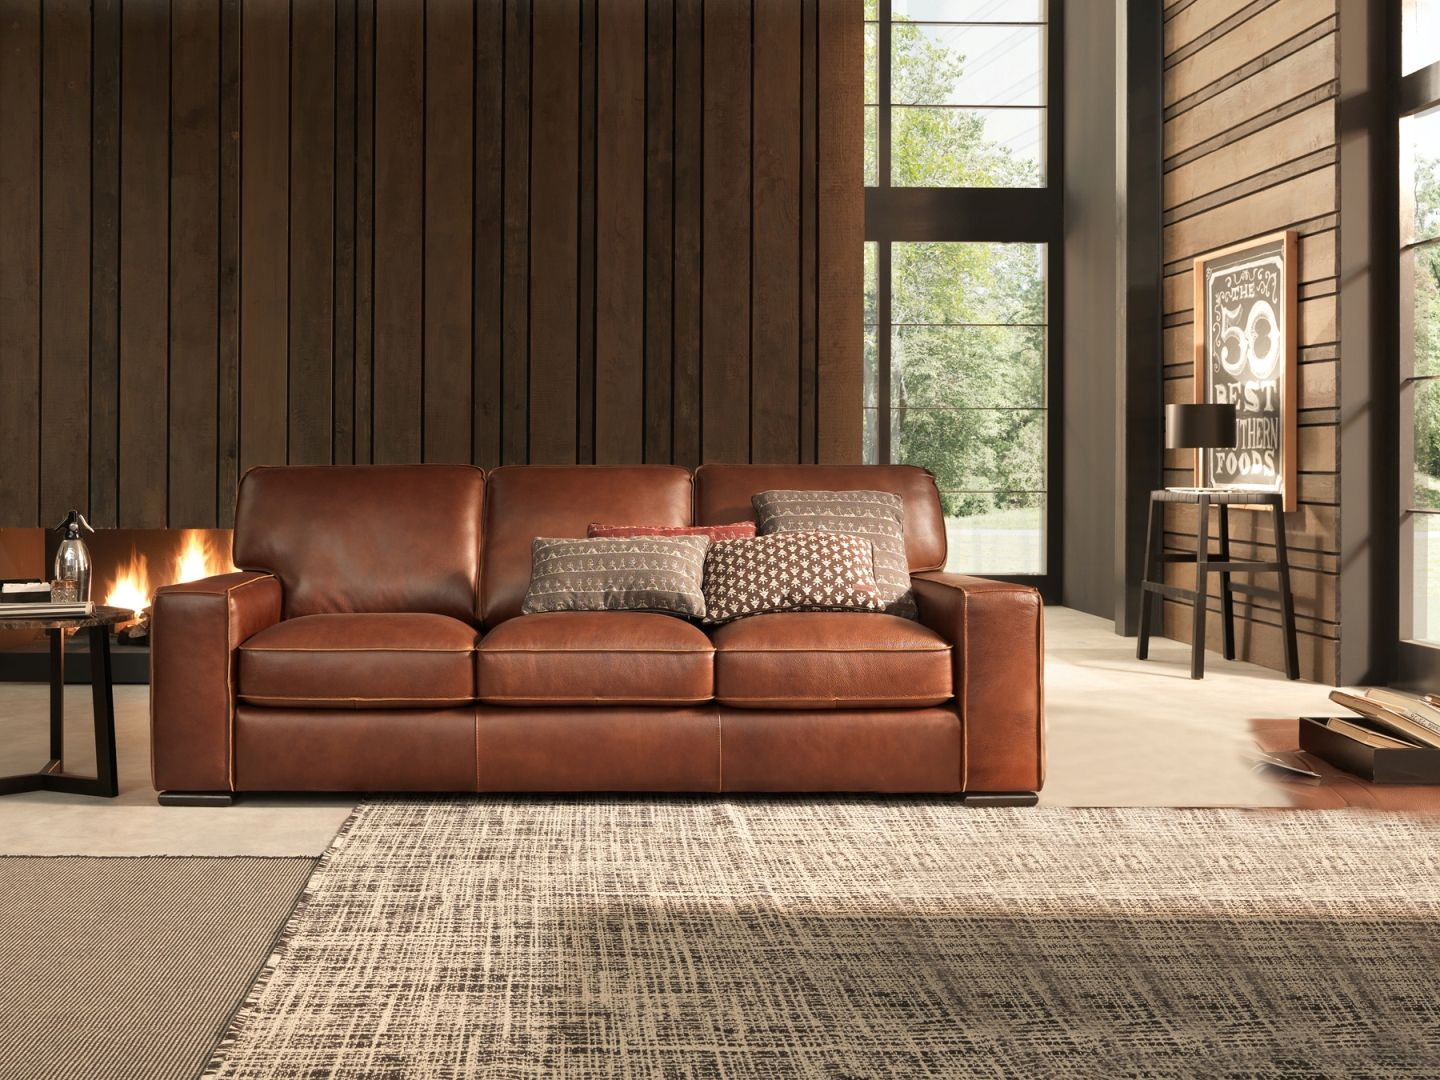 2017 Complete Leather Sofa Sets How To Get Your Dream Set Brown Bed